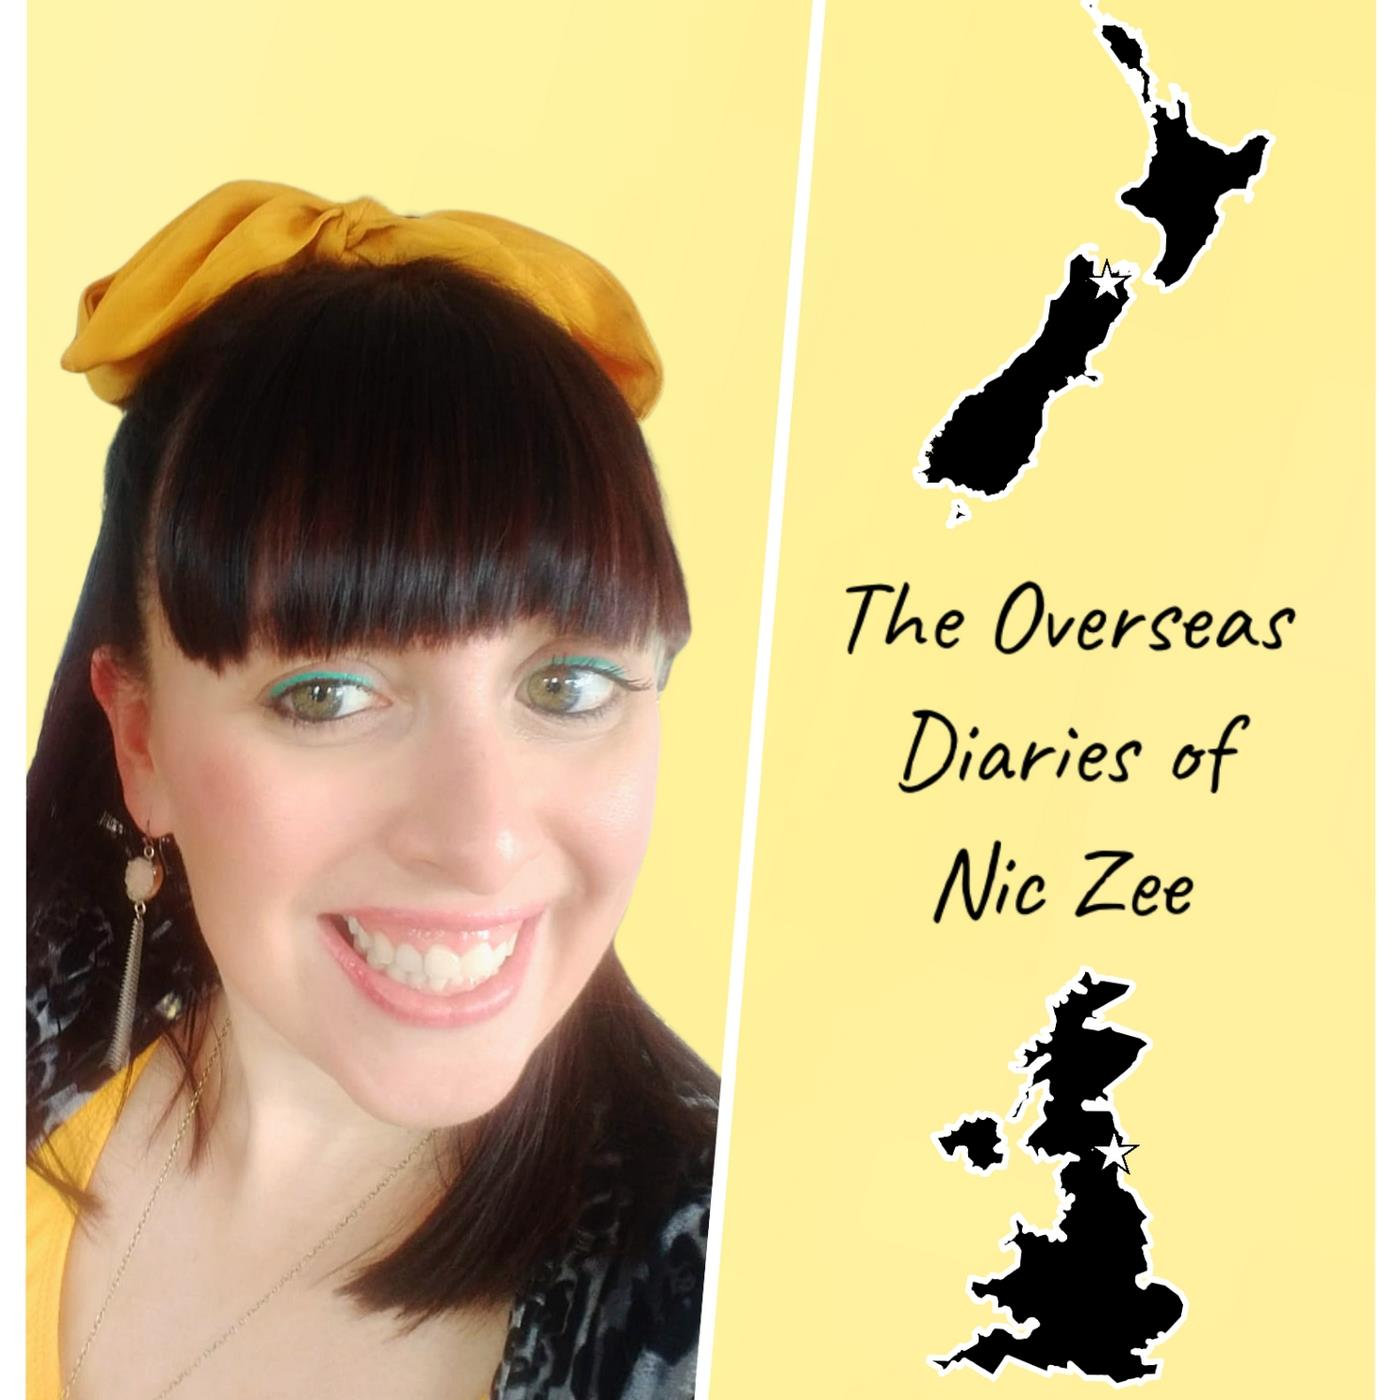 The Overseas Diaries of Nic Zee